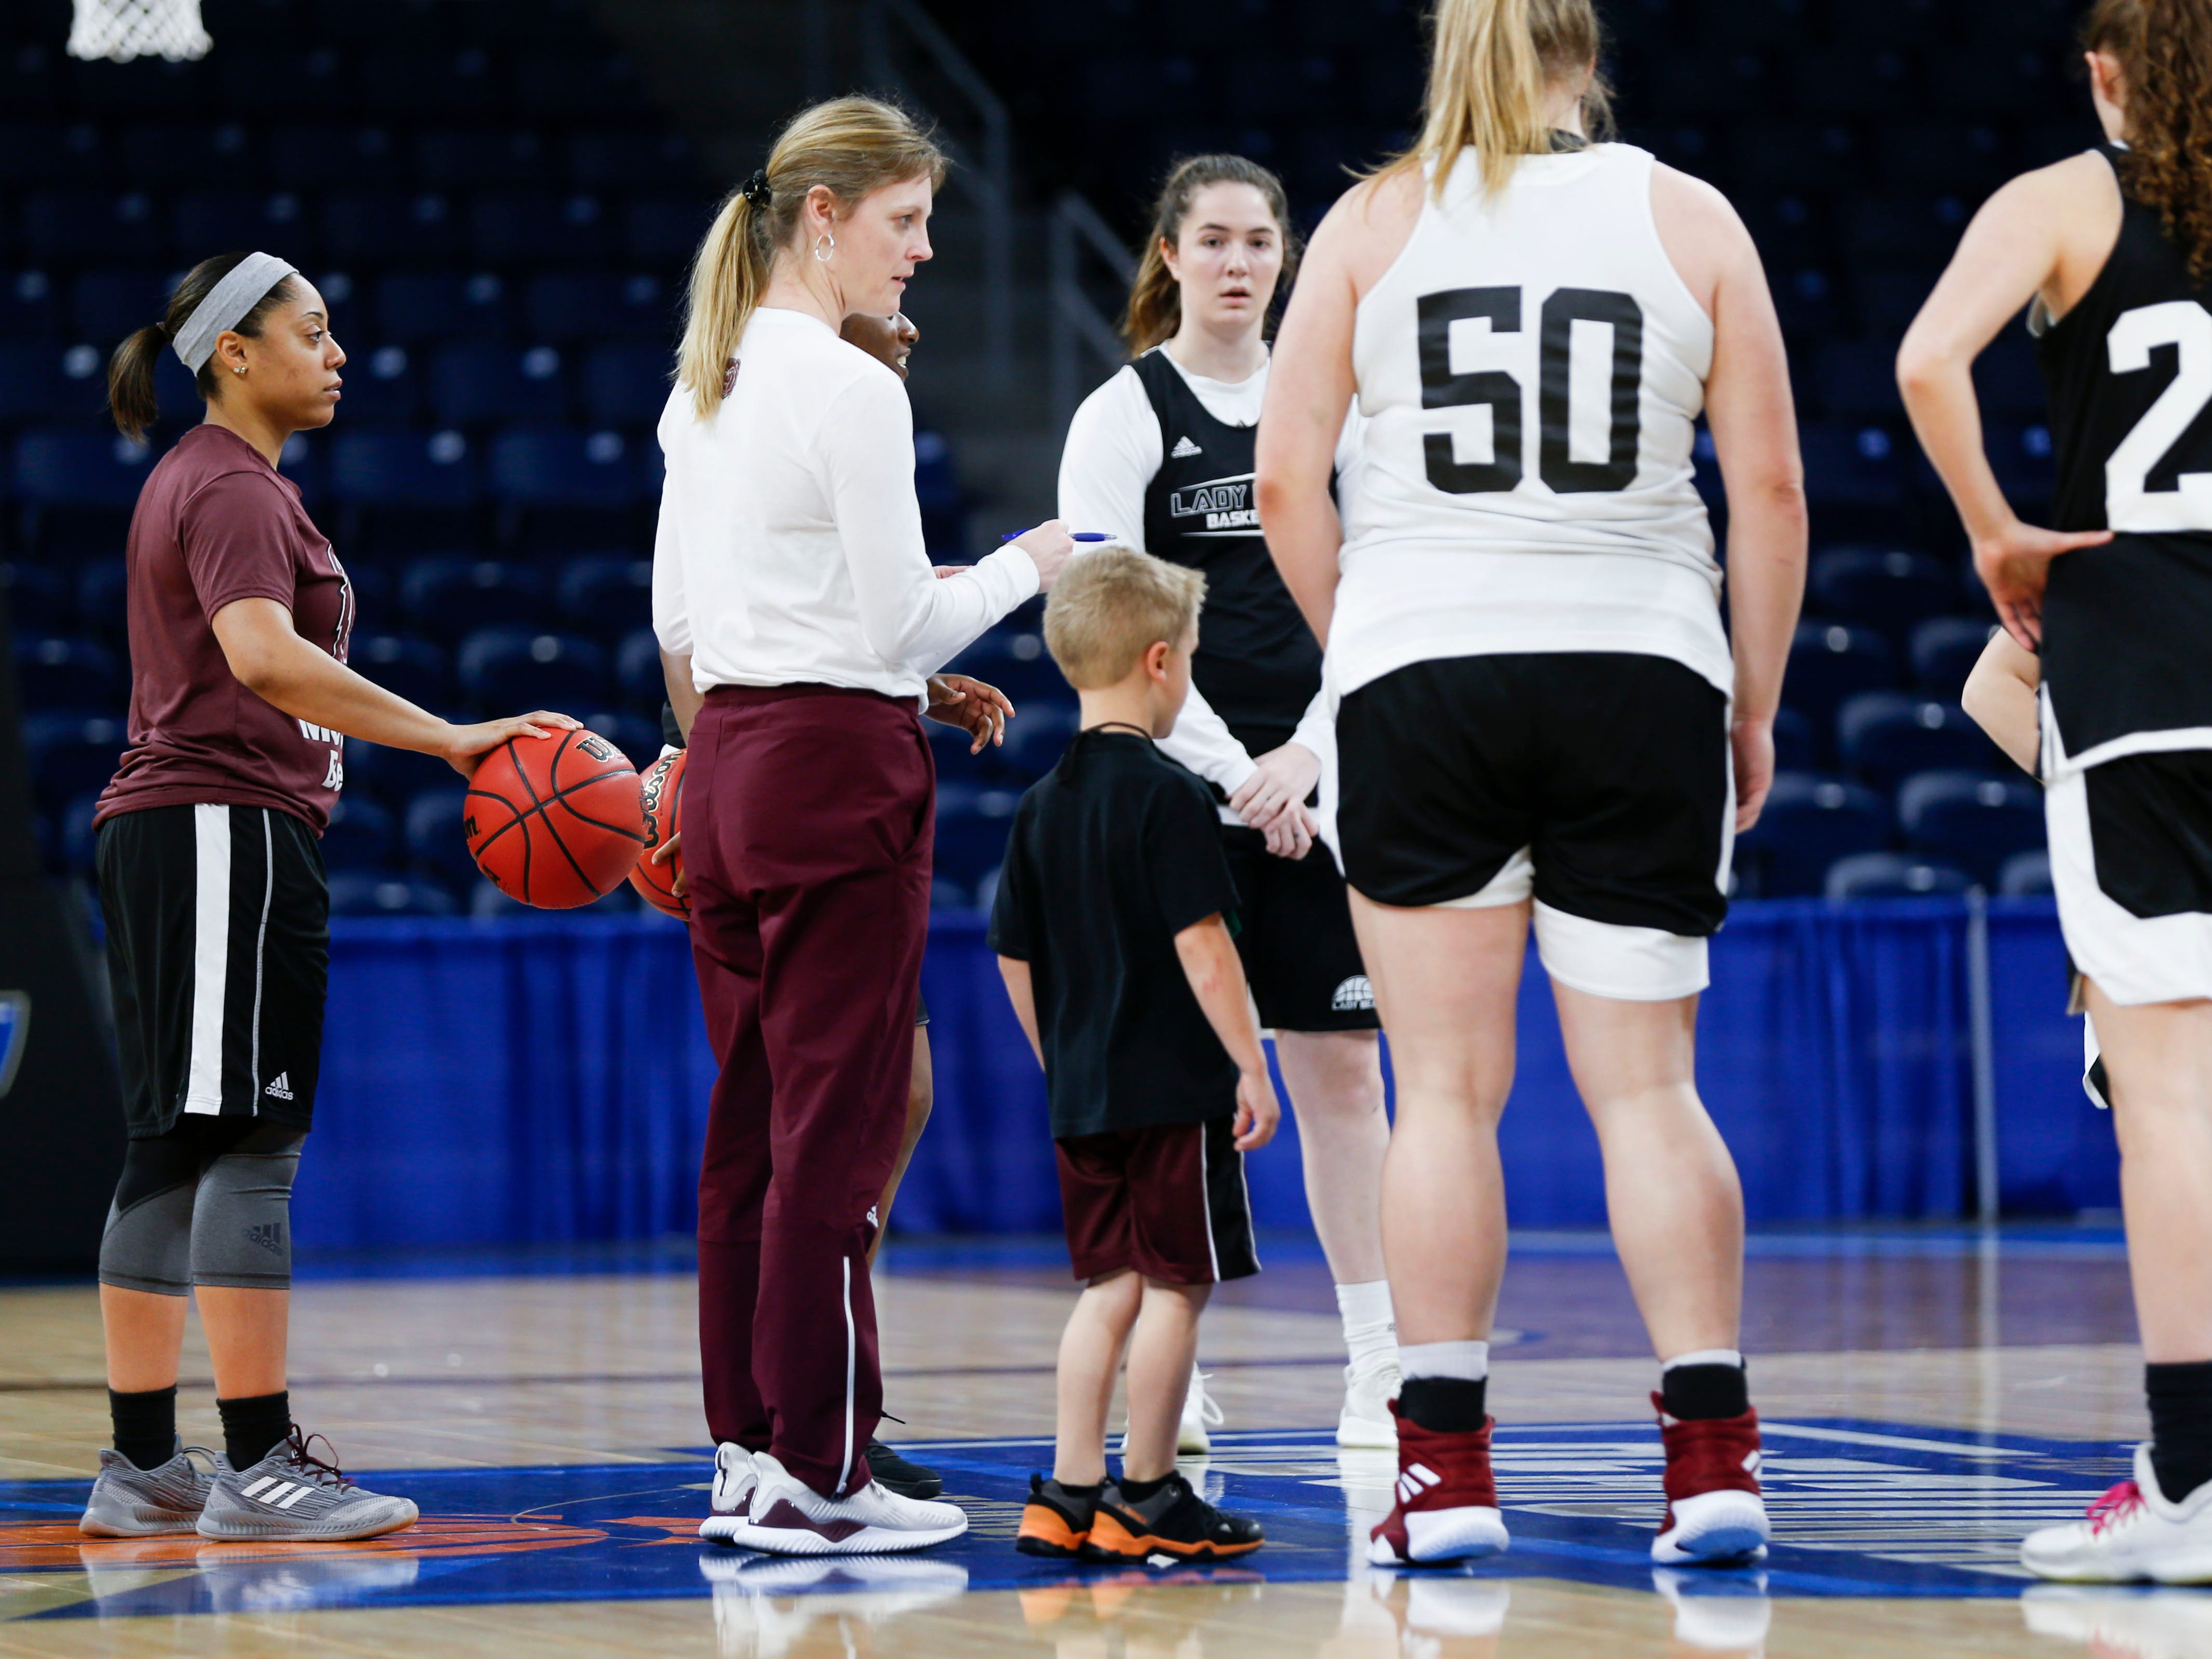 Jackson Harper, 5, the son of Lady Bears head coach Kellie Harper stands with the team during a huddle during a practice session at Wintrust Arena on Friday, March 29, 2019. The Lady Bears are playing Stanford in the NCAA Women's Tournament on Saturday.